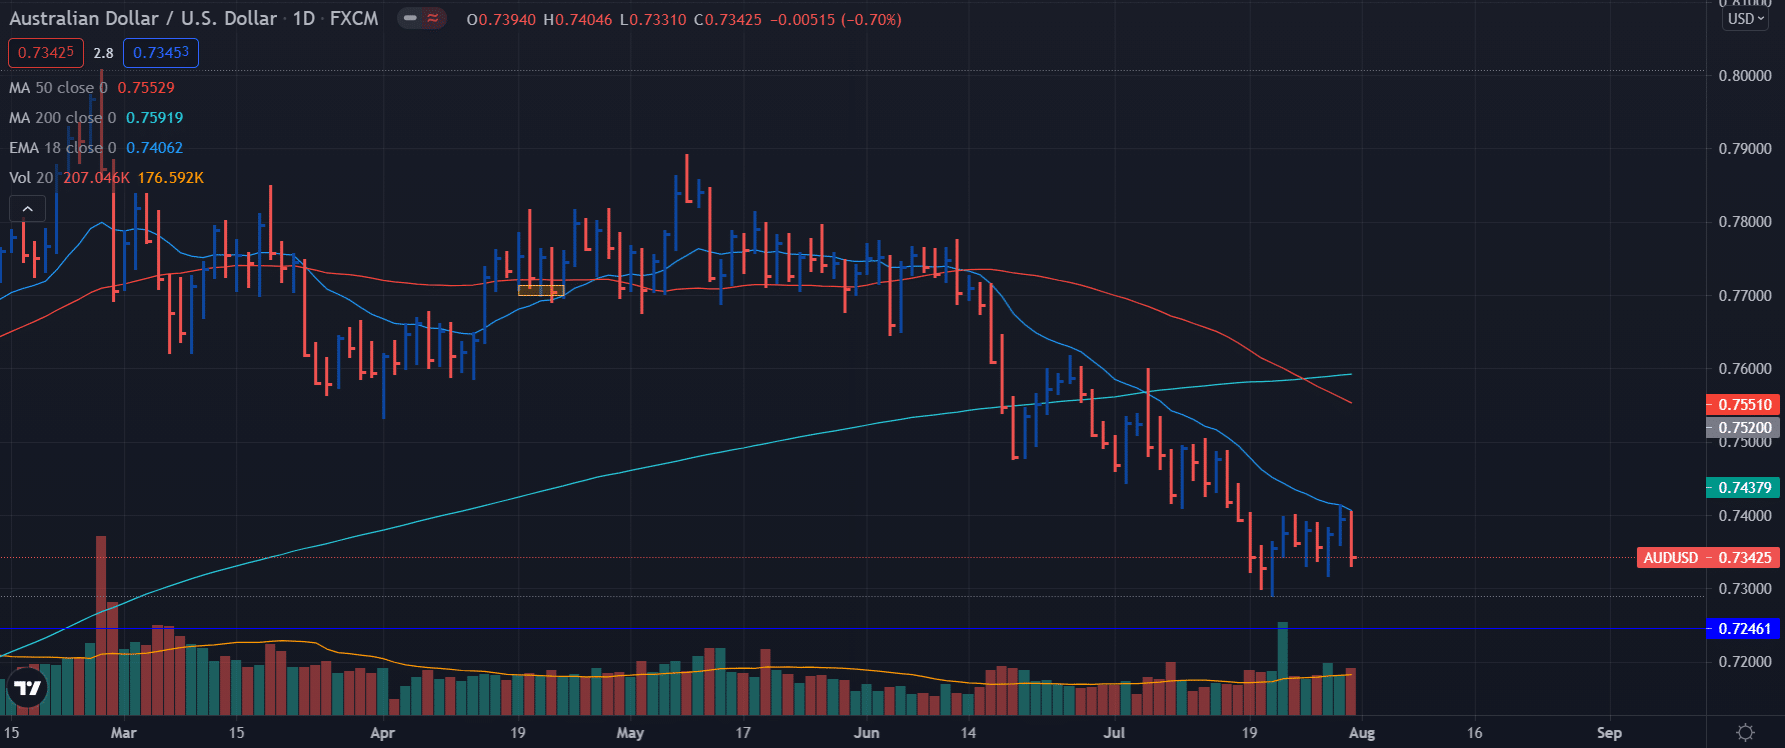 AUD/USD weekly analysis on daily chart